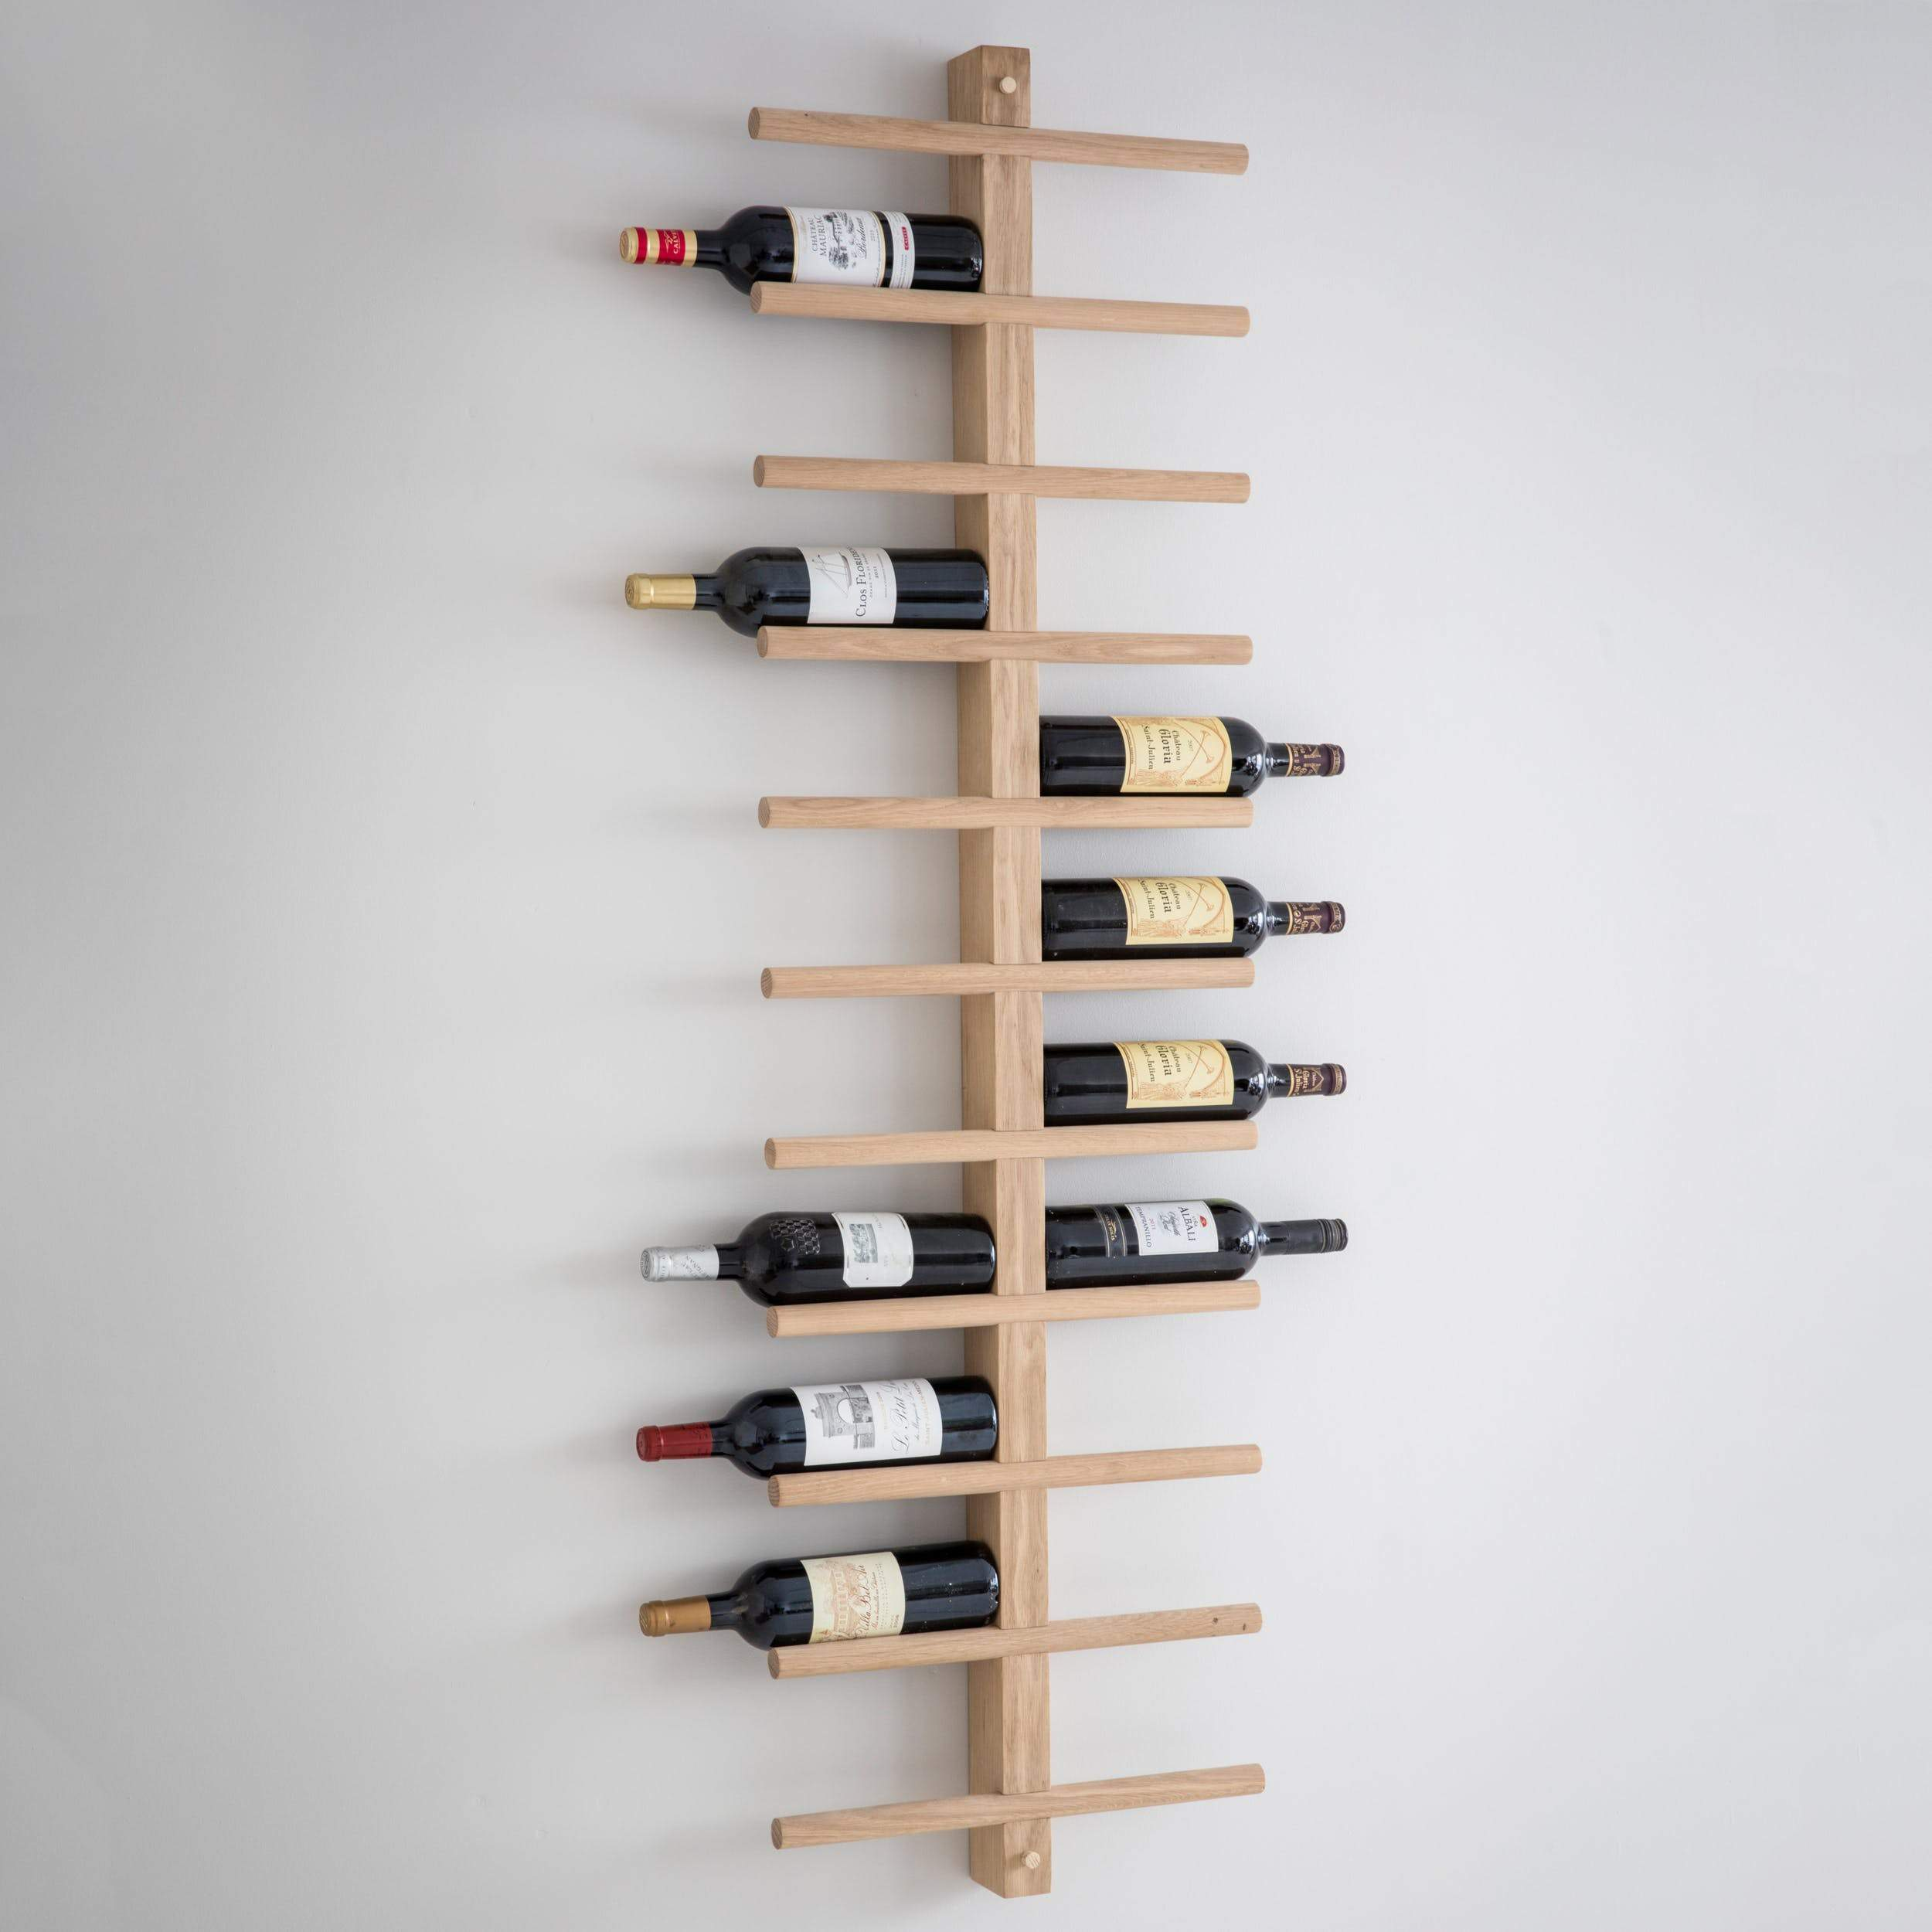 Wood Wall Mounted Wine Bottle Rack At The Farthing The Farthing